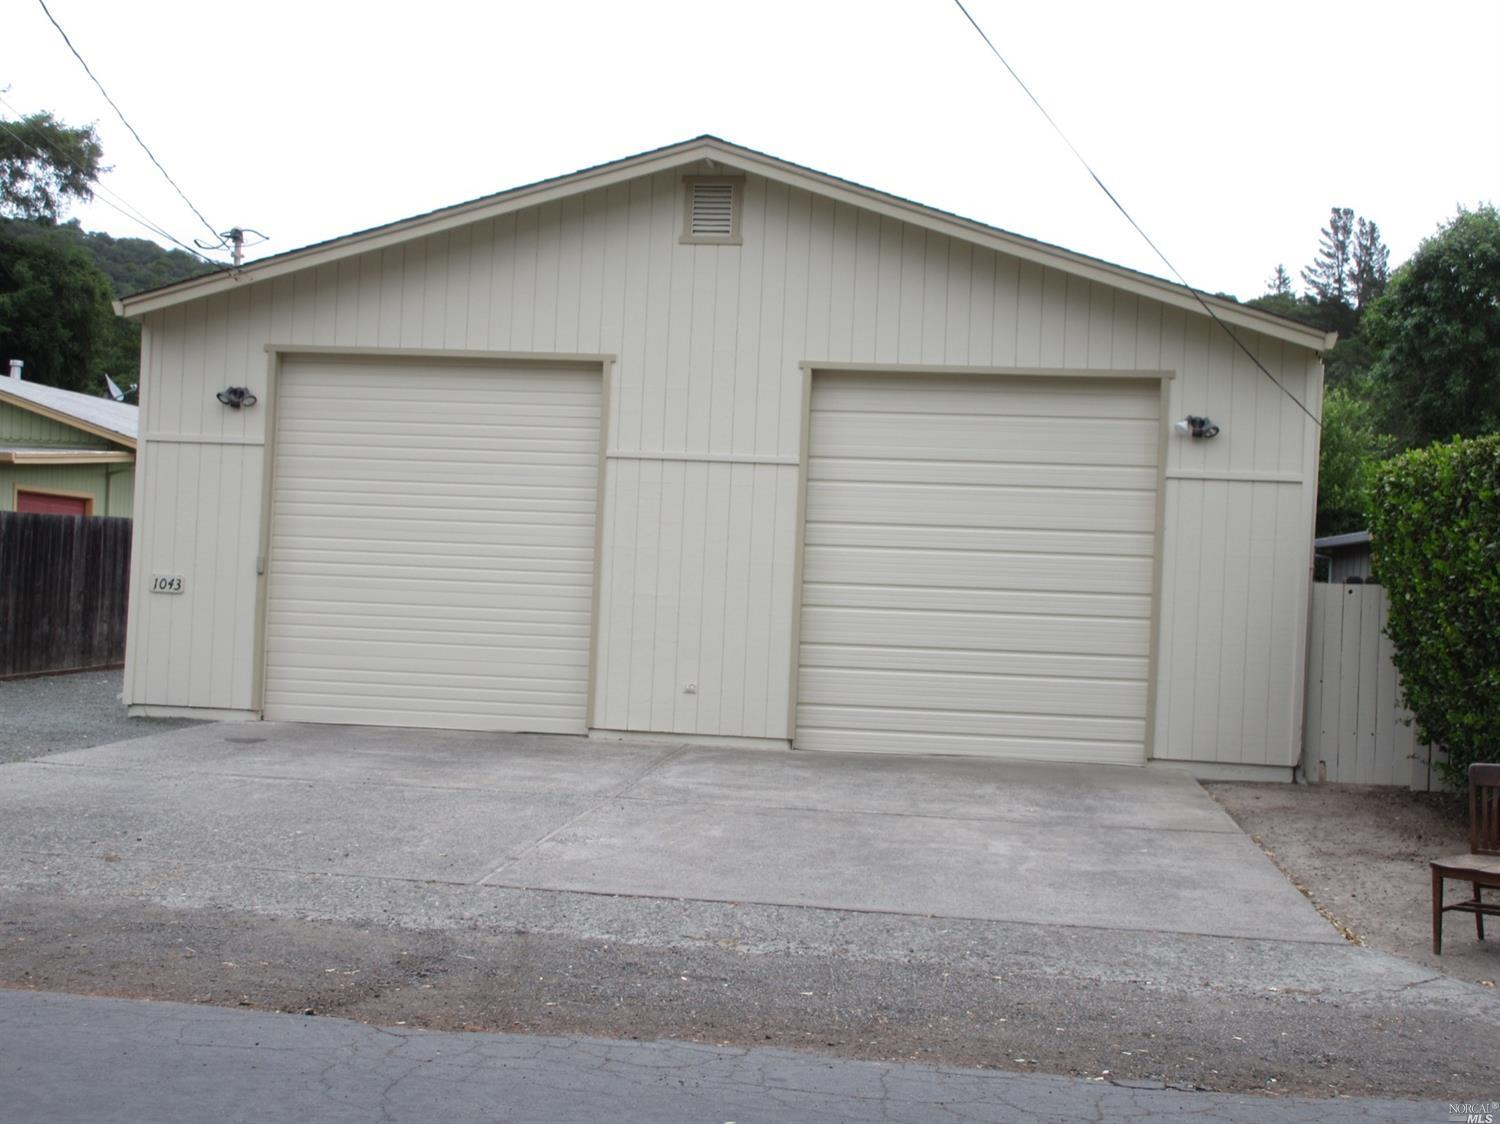 Excellent amount of floor space for the money. Although online records show 3 bedrooms only 2 are likely deemed as suitable bederooms by many observers.  Master bedroom has a huge amount of closet space. Bathrooms renovated, home fully repainted interior and exterior, ramp to front door for possible locomotor challenged buyer, two waterheaters, newer AC and Furnace. Kitchen appliances all servaceable.  New hood and dishwashwer.Covered deck off Kitchen on South Side of Home.  Two huge garage bays fully separated with separate lockable side entrances and key pad access automatic overhead doors.  Ideal for contractor or small business storage.  Both home and pest inspections have been conducted w/much of the work recommended completed by owner & attached.  However, Buyer must conduct own inspections to verify that the properties condition is suitable for the Buyer's purposes. Operability of central vacuum system unknown. Home is offered strictly AS-IS with offers recviewed as received.